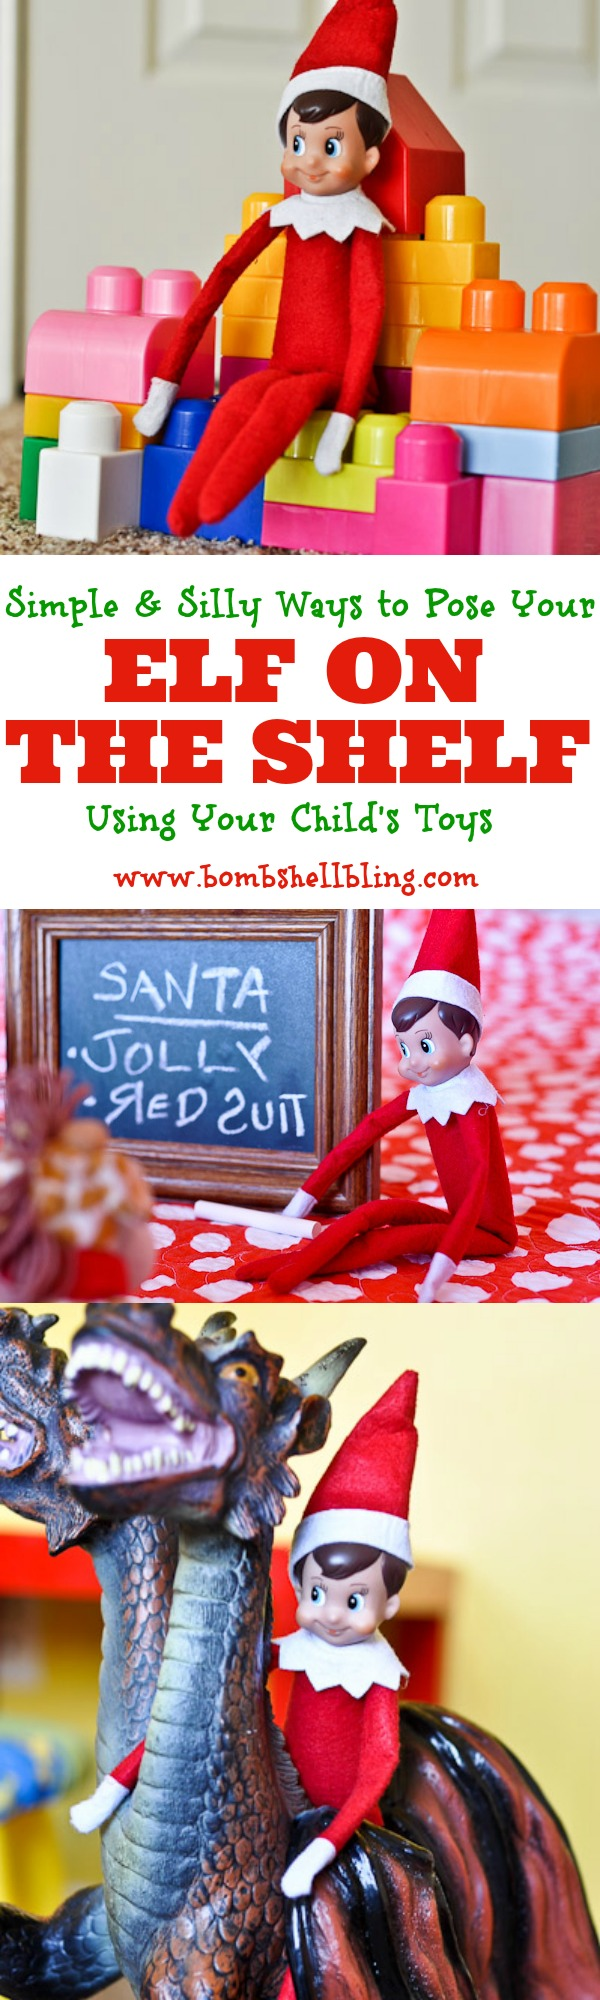 Simple and silly Elf on the Shelf ideas using toys. Kids love to see the mischief elves get into. Just wait until you see the look on their faces when they see the elves are messing with their stuff! I love these simple ideas!